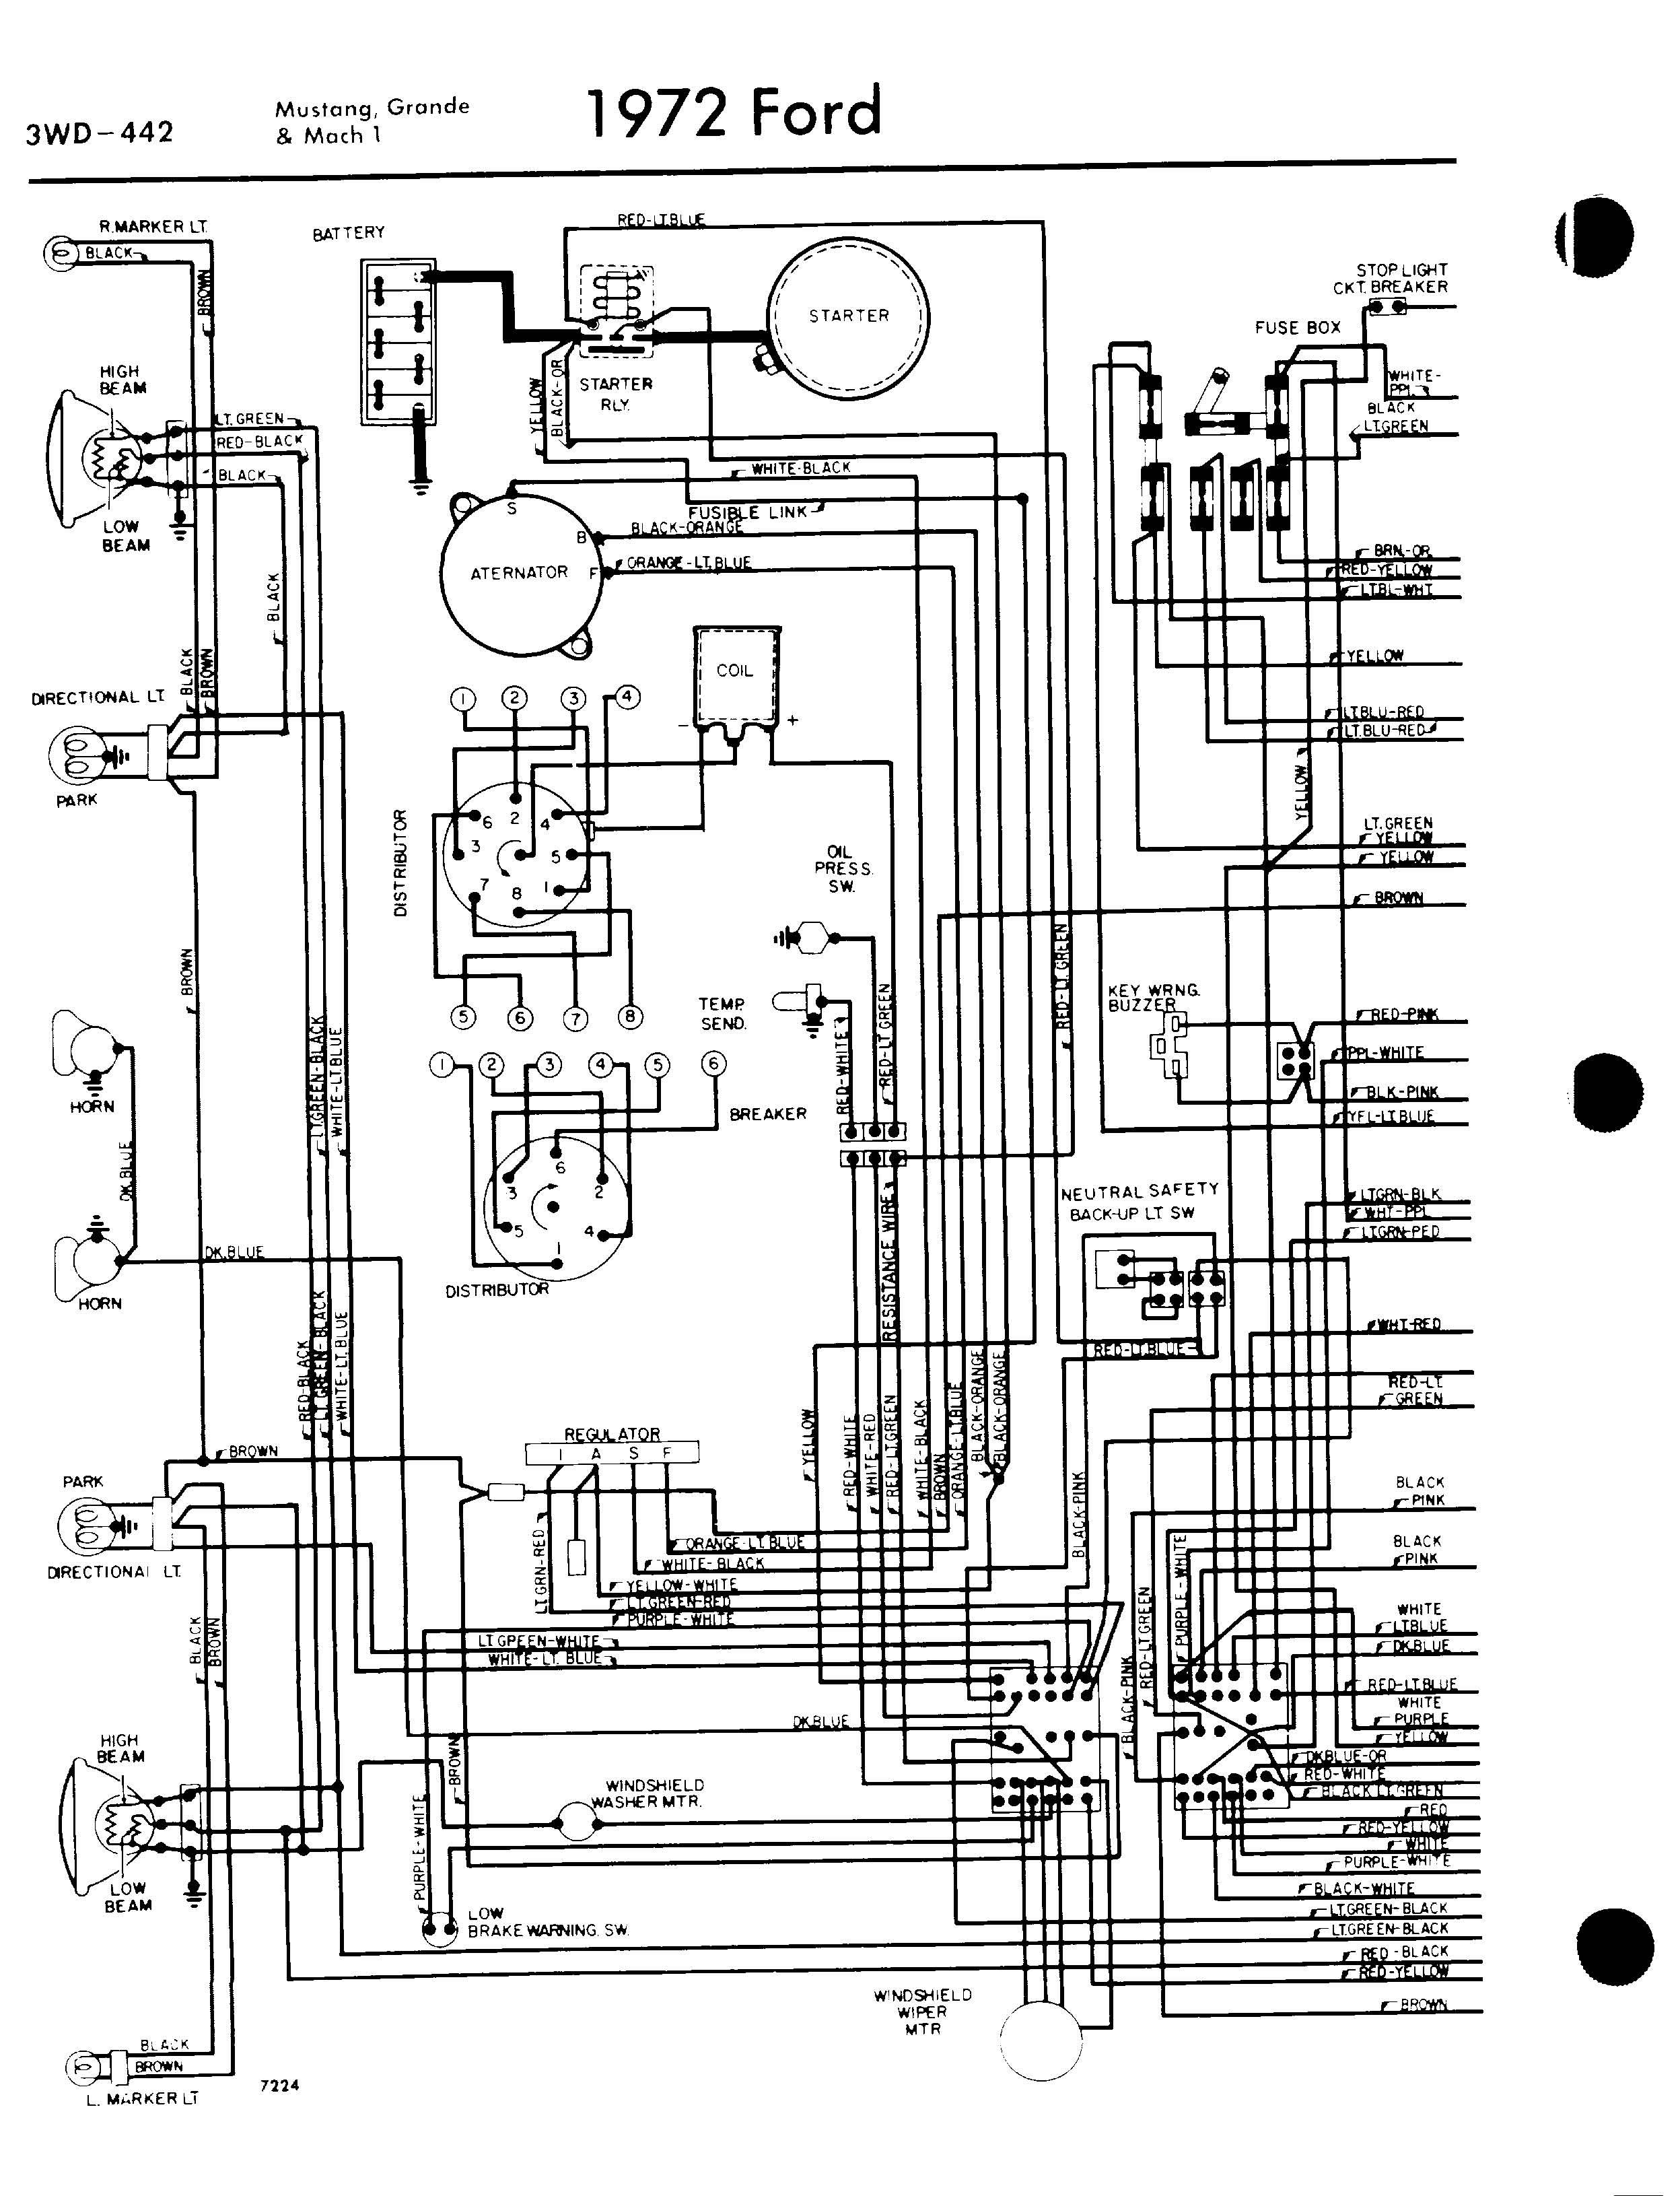 Amp Gauge Wiring Diagram 72 Mustang Wiring Diagrams Collection Collection Chatteriedelavalleedufelin Fr